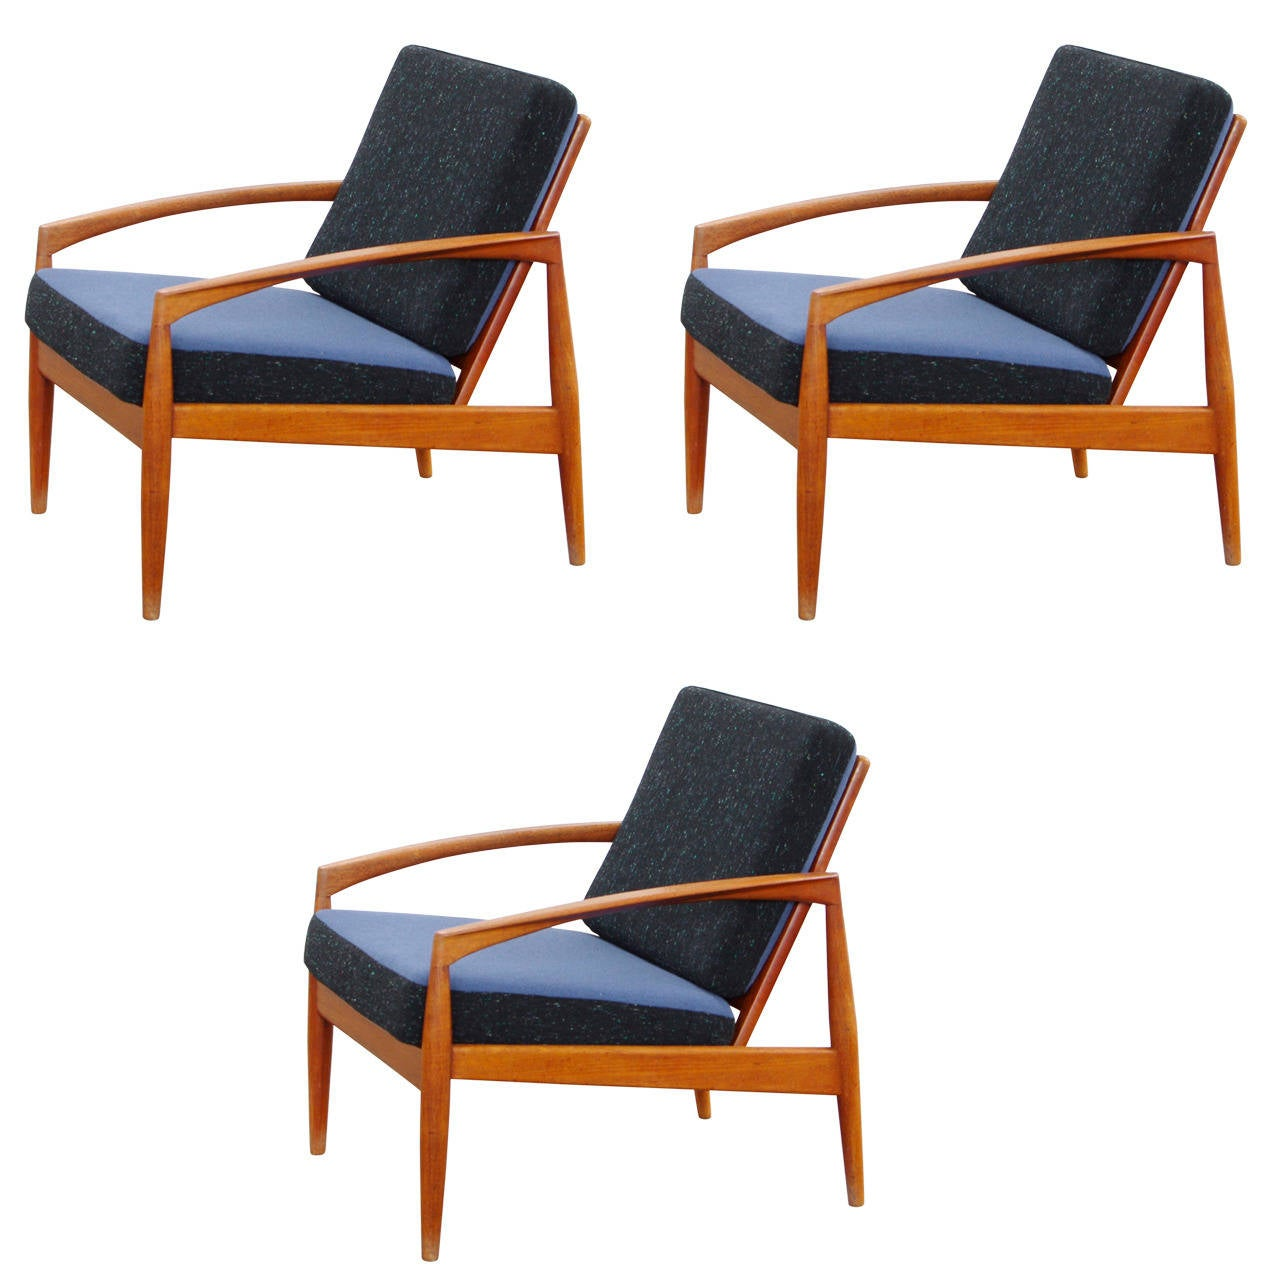 Teak easy chairs by kai kristiansen danish mid century modern design 1950s at 1stdibs - Kai kristiansen chairs ...